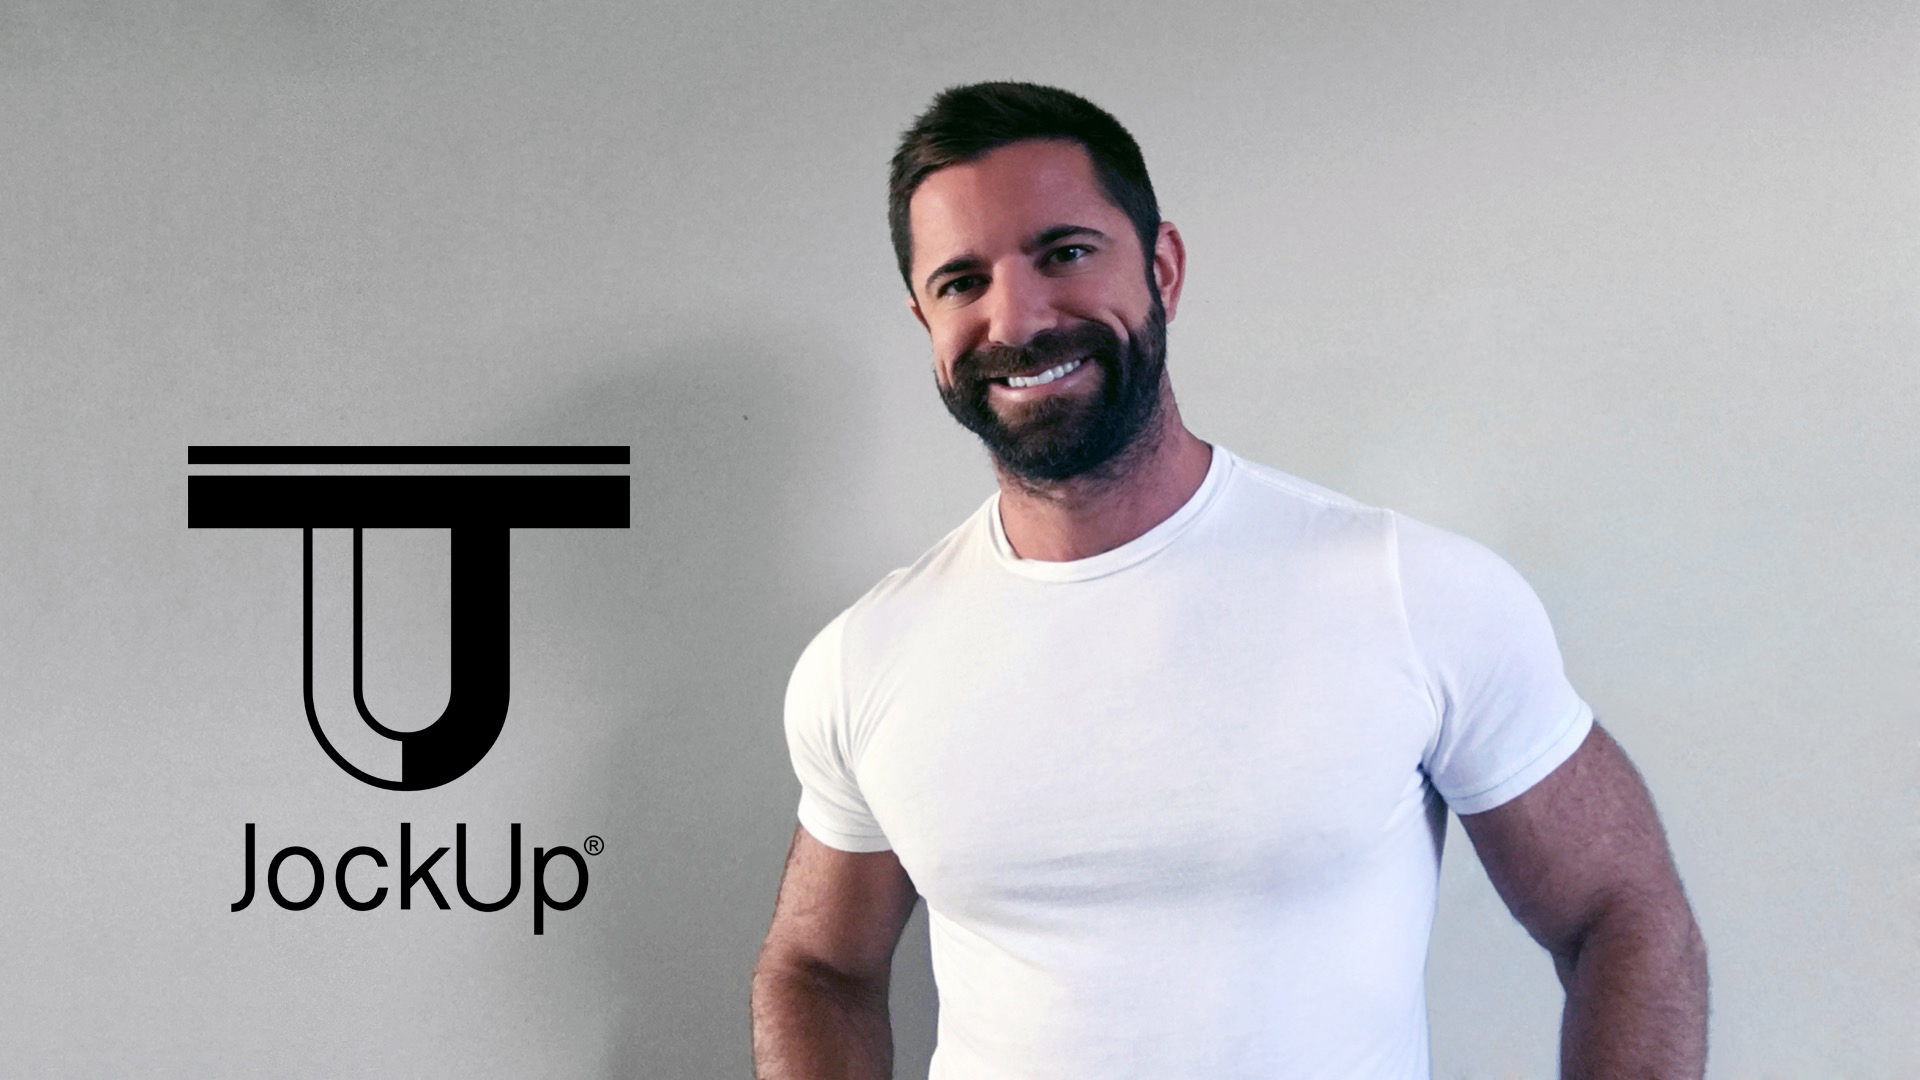 Gear Up with JockUp - Interview with an awesome Brand!